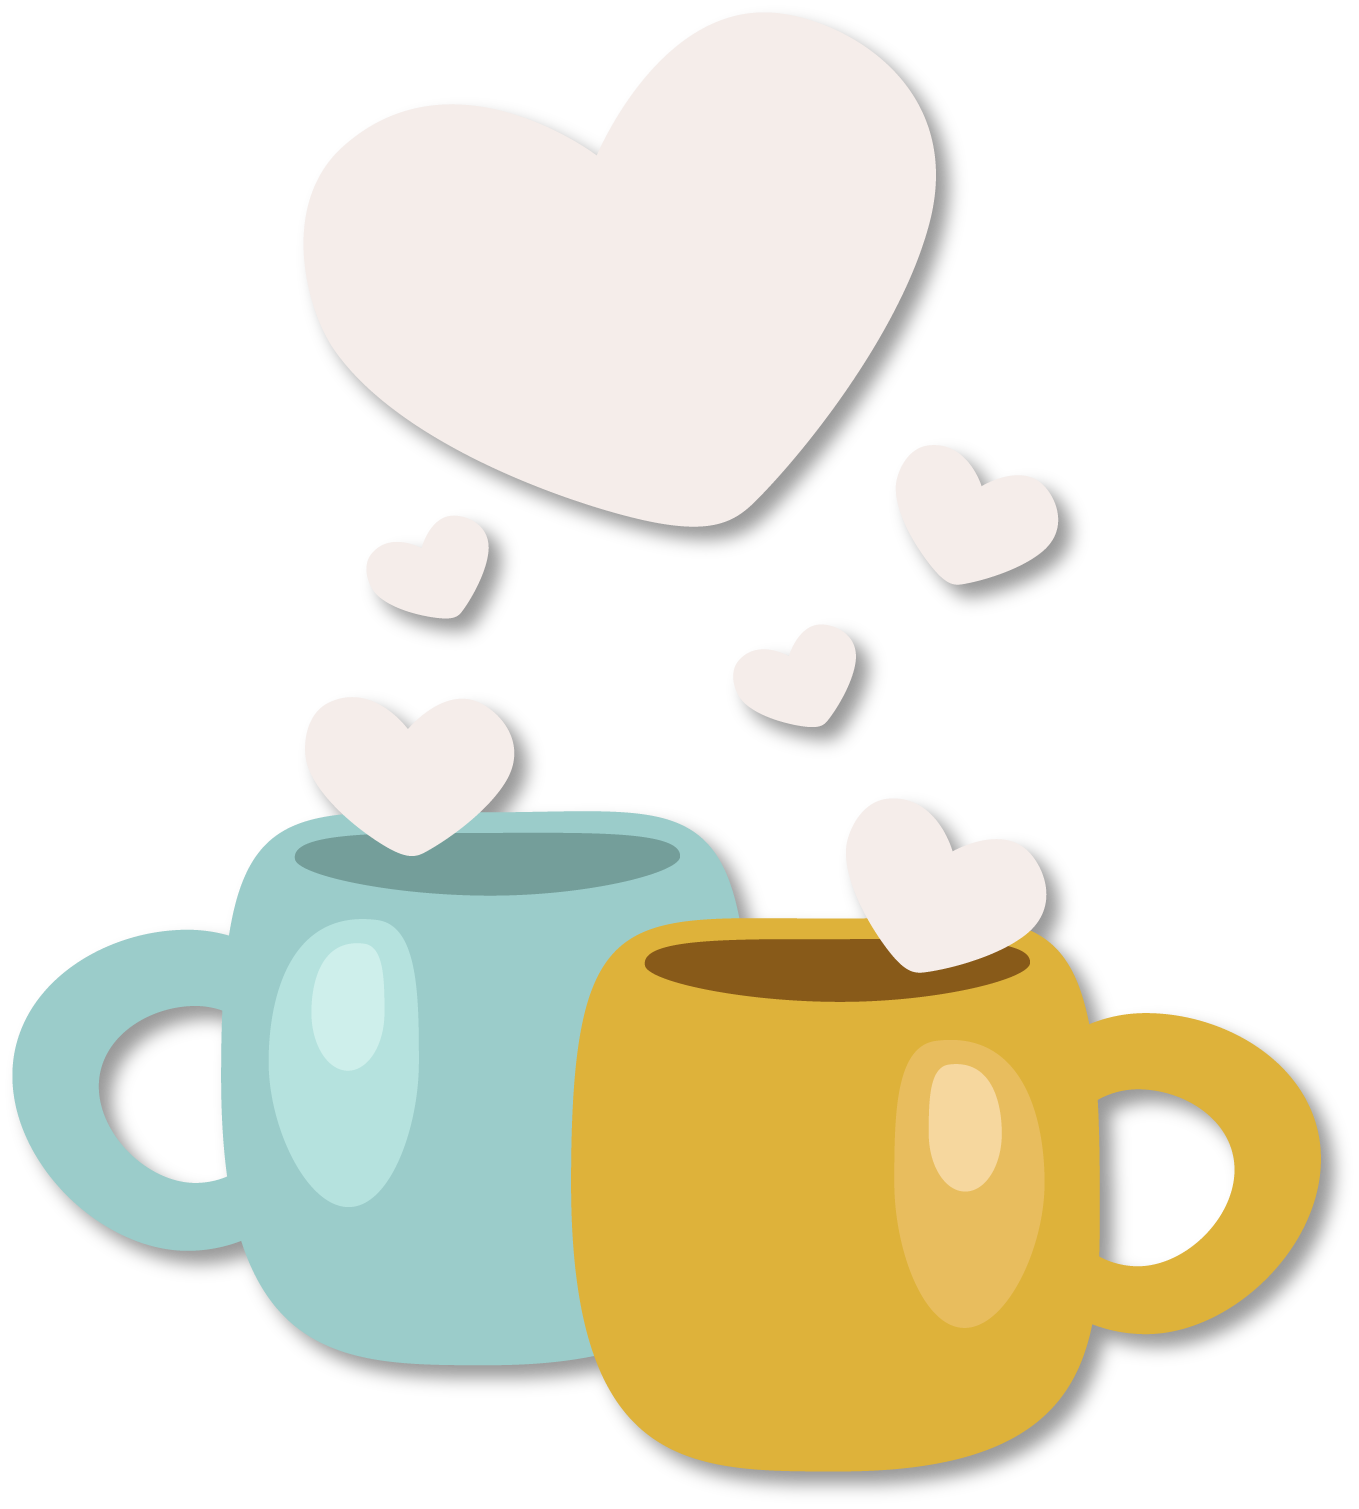 Coffee cup with heart clipart jpg download Qixi Festival Coffee cup Clip art - Valentines Day decorative ... jpg download